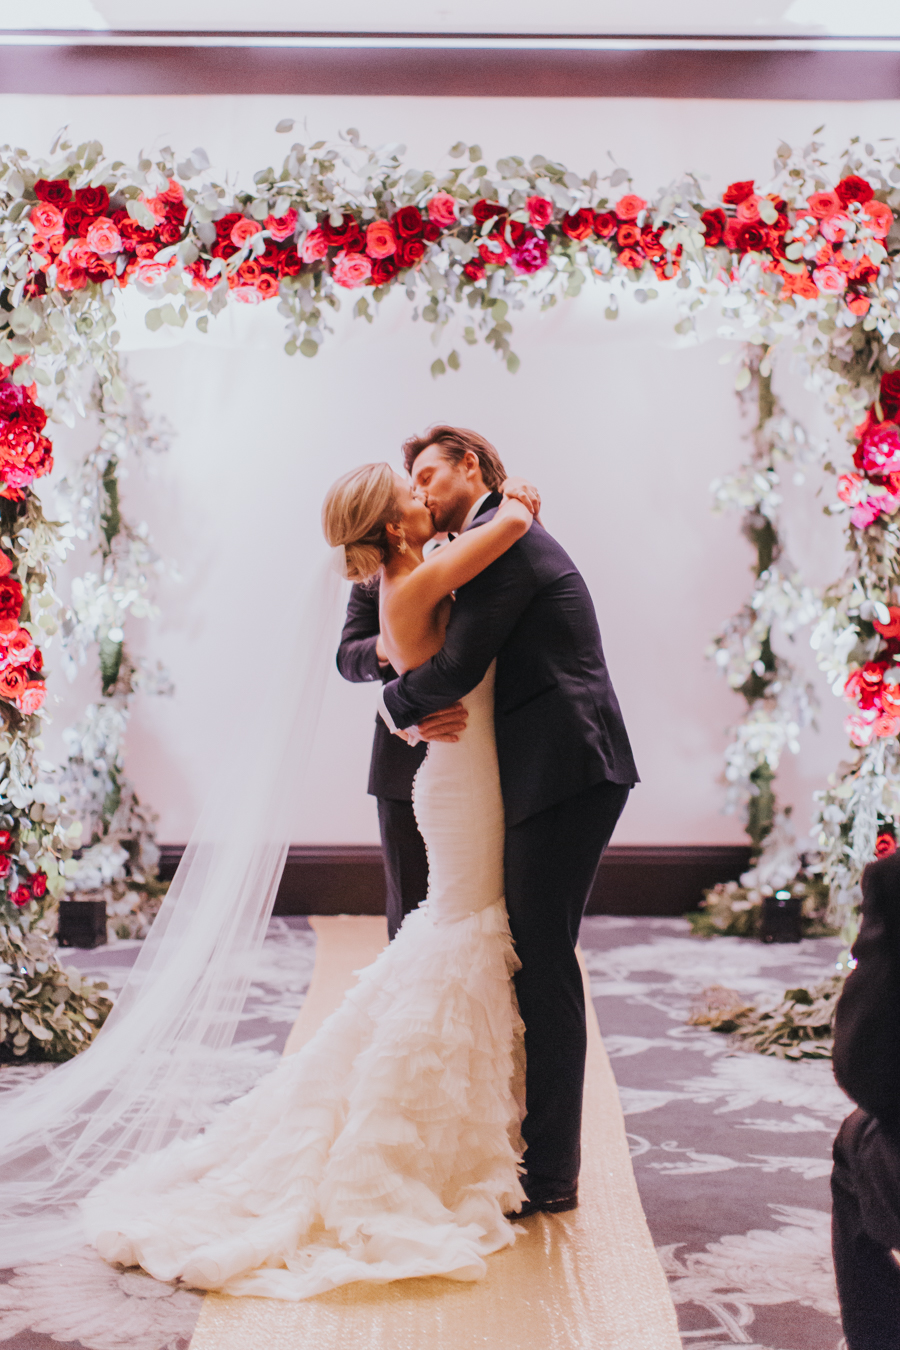 Loren and Alex Kuznetsov Gold and Burgundy wedding at Epicurean Tampa Royal Fall Wedding in Tampa Florida Inside Weddings MD Events Tampa-69.jpg